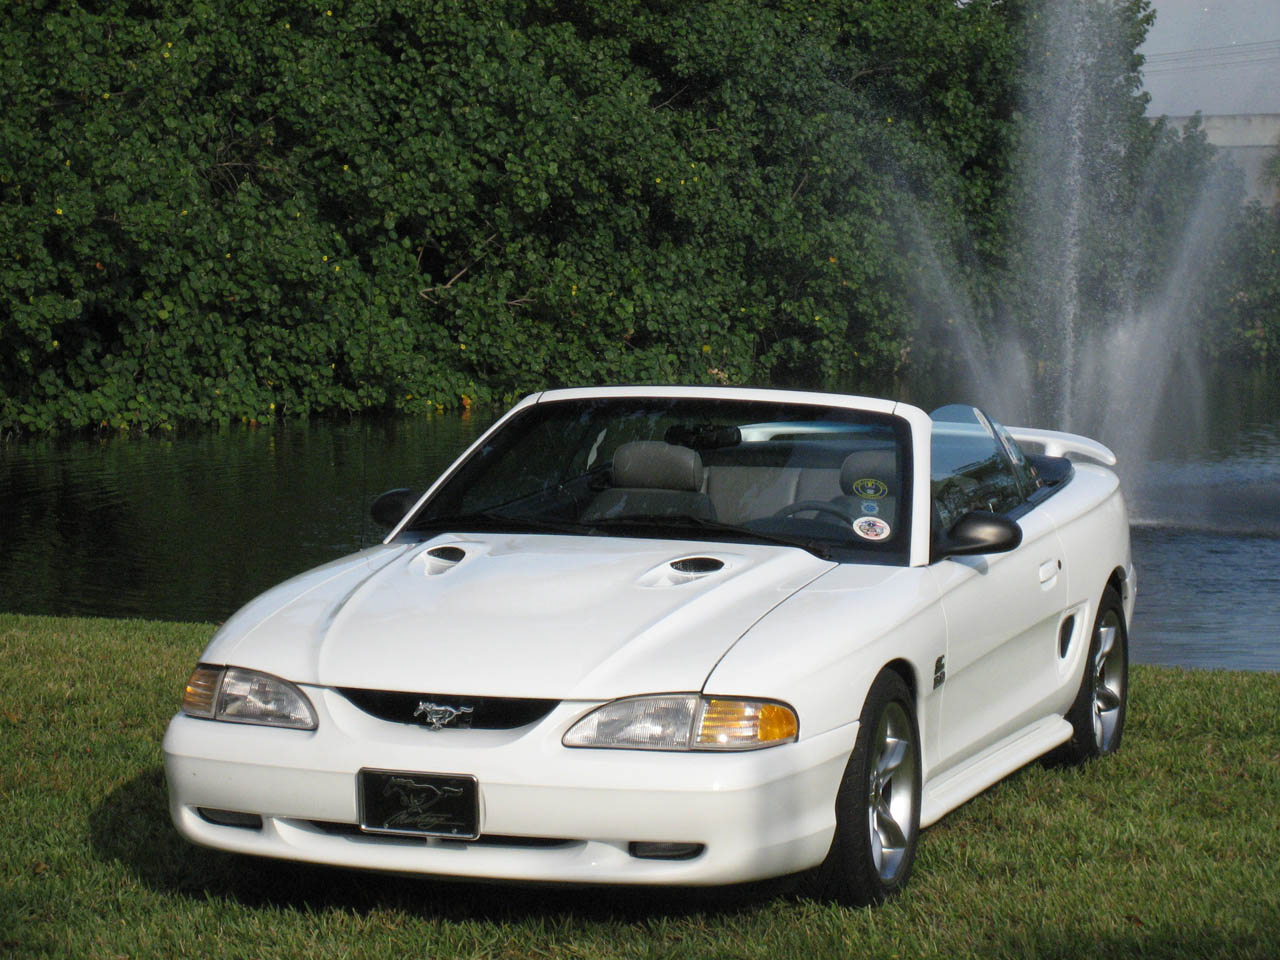 1994 Ford Mustang gt convertible ATI Supercharger